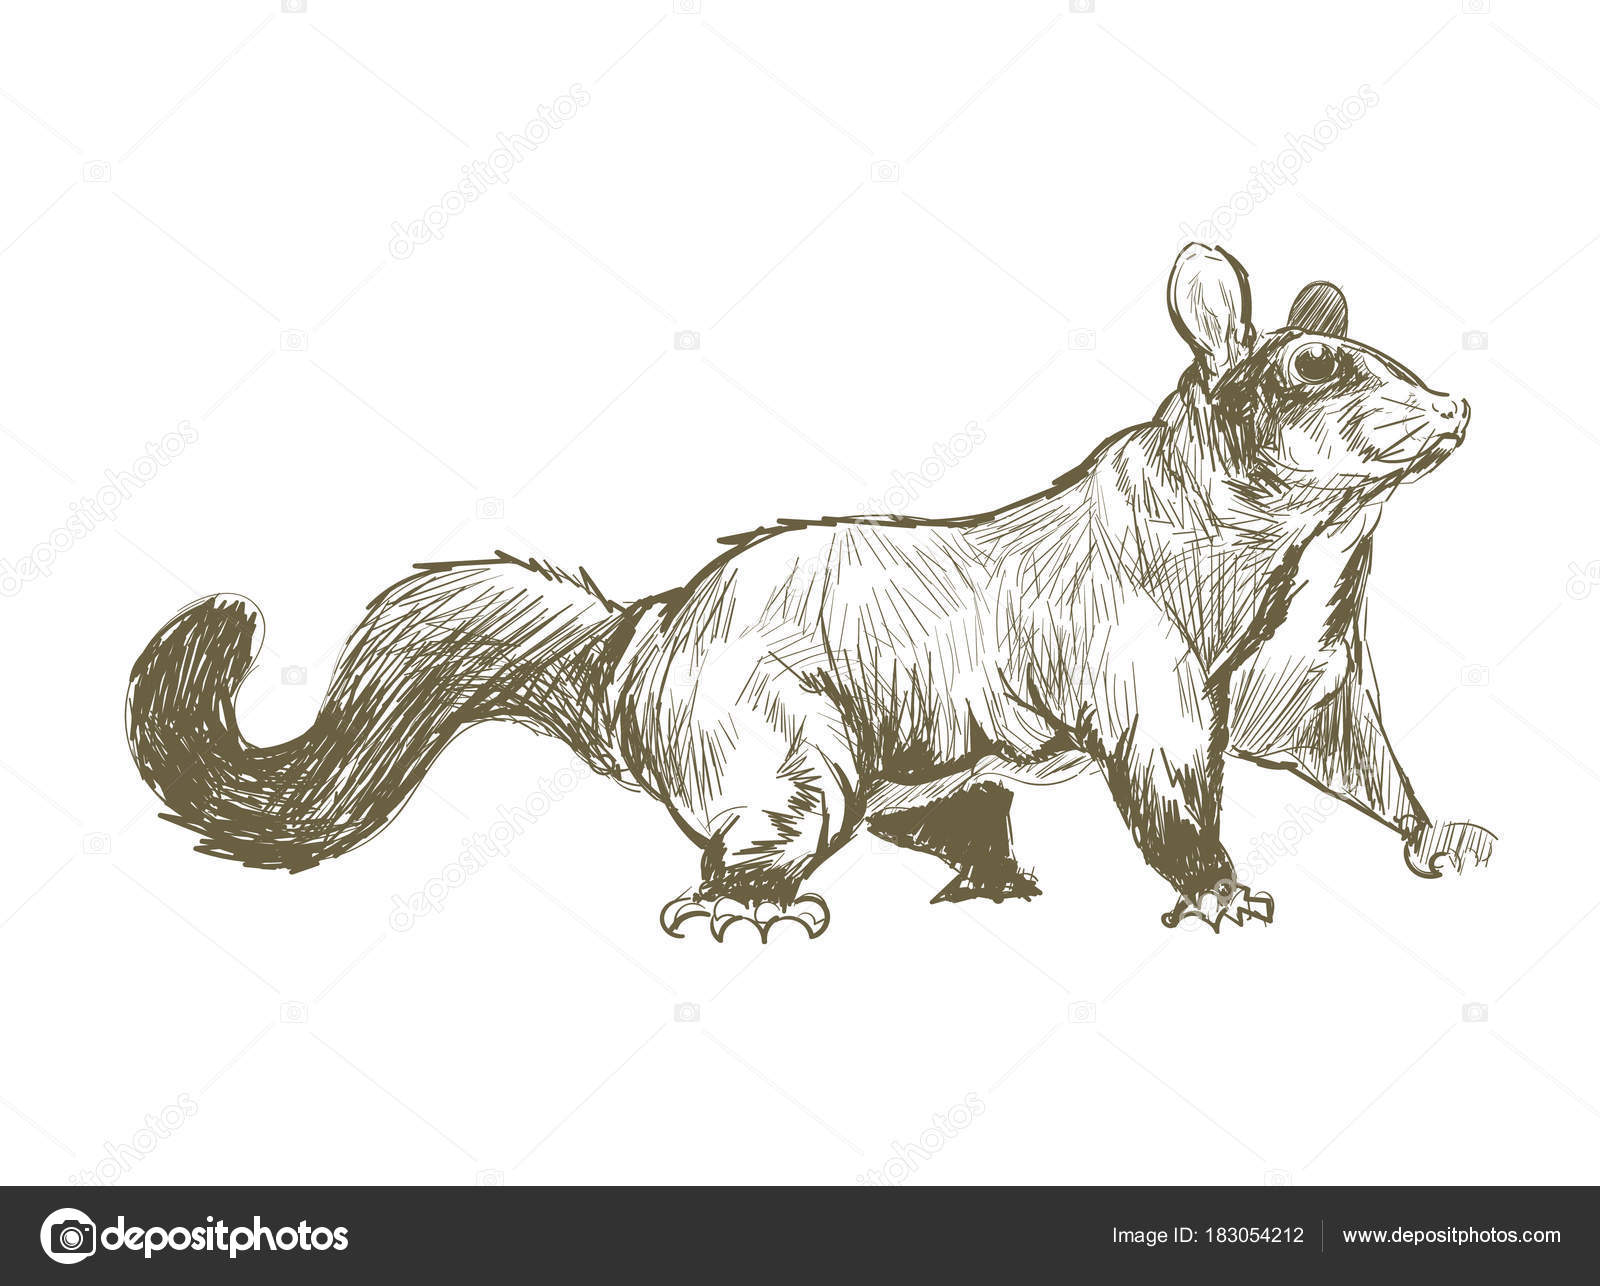 Line Drawing Rat : Illustration drawing style rat u2014 stock photo © rawpixel #183054212